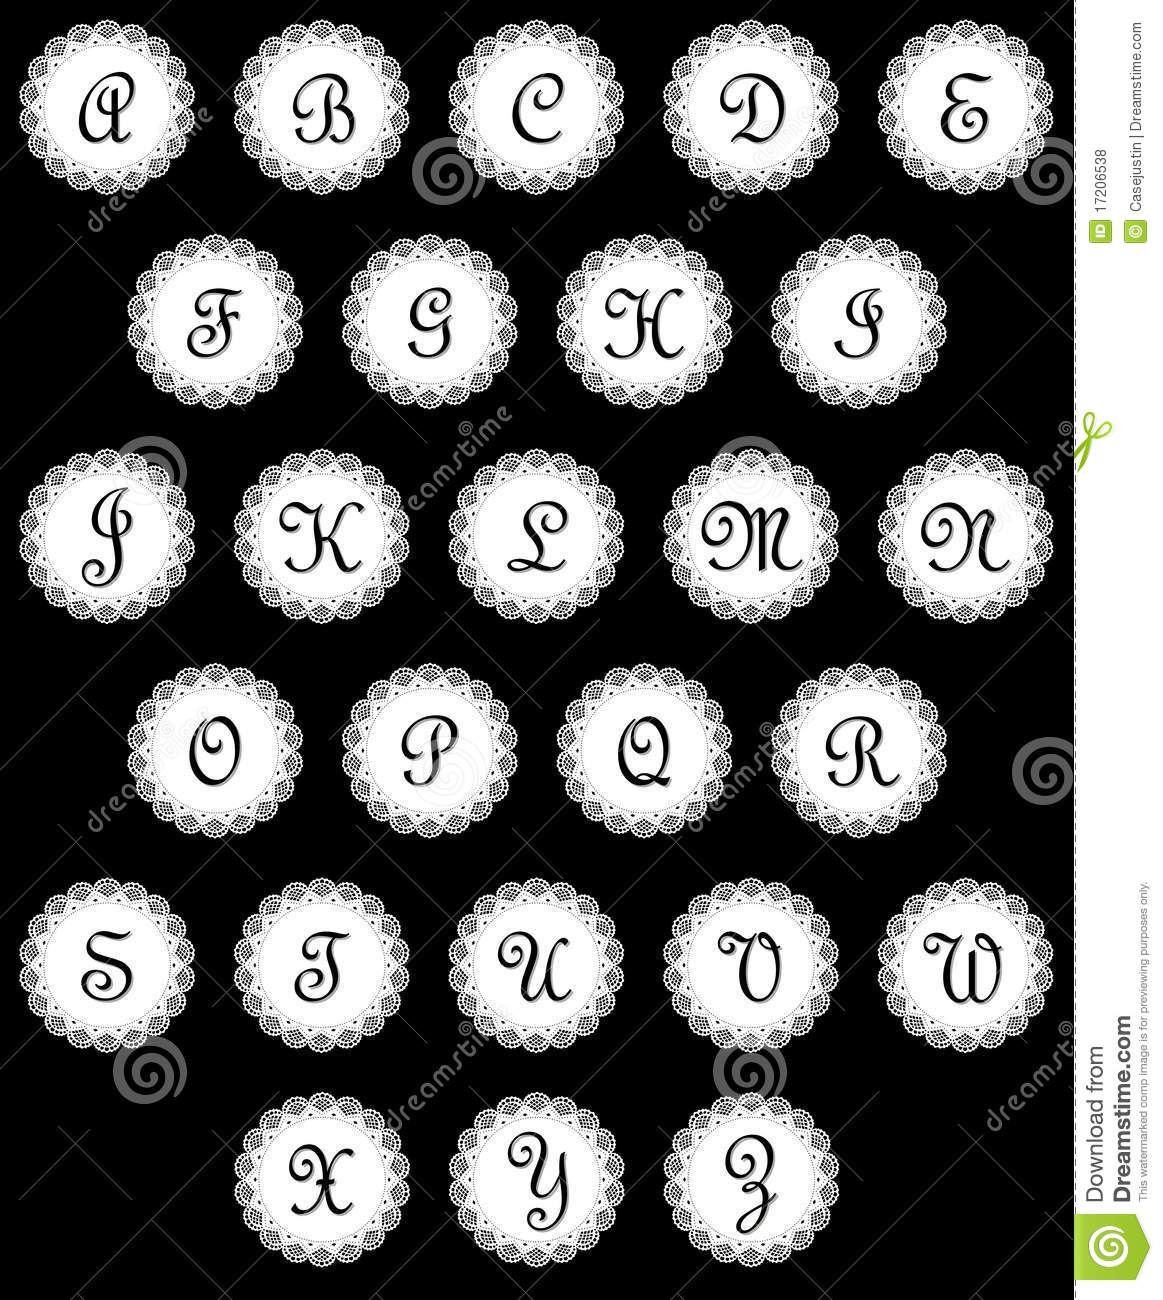 Complete alphabet in vintage script initials on white lace medallions ...